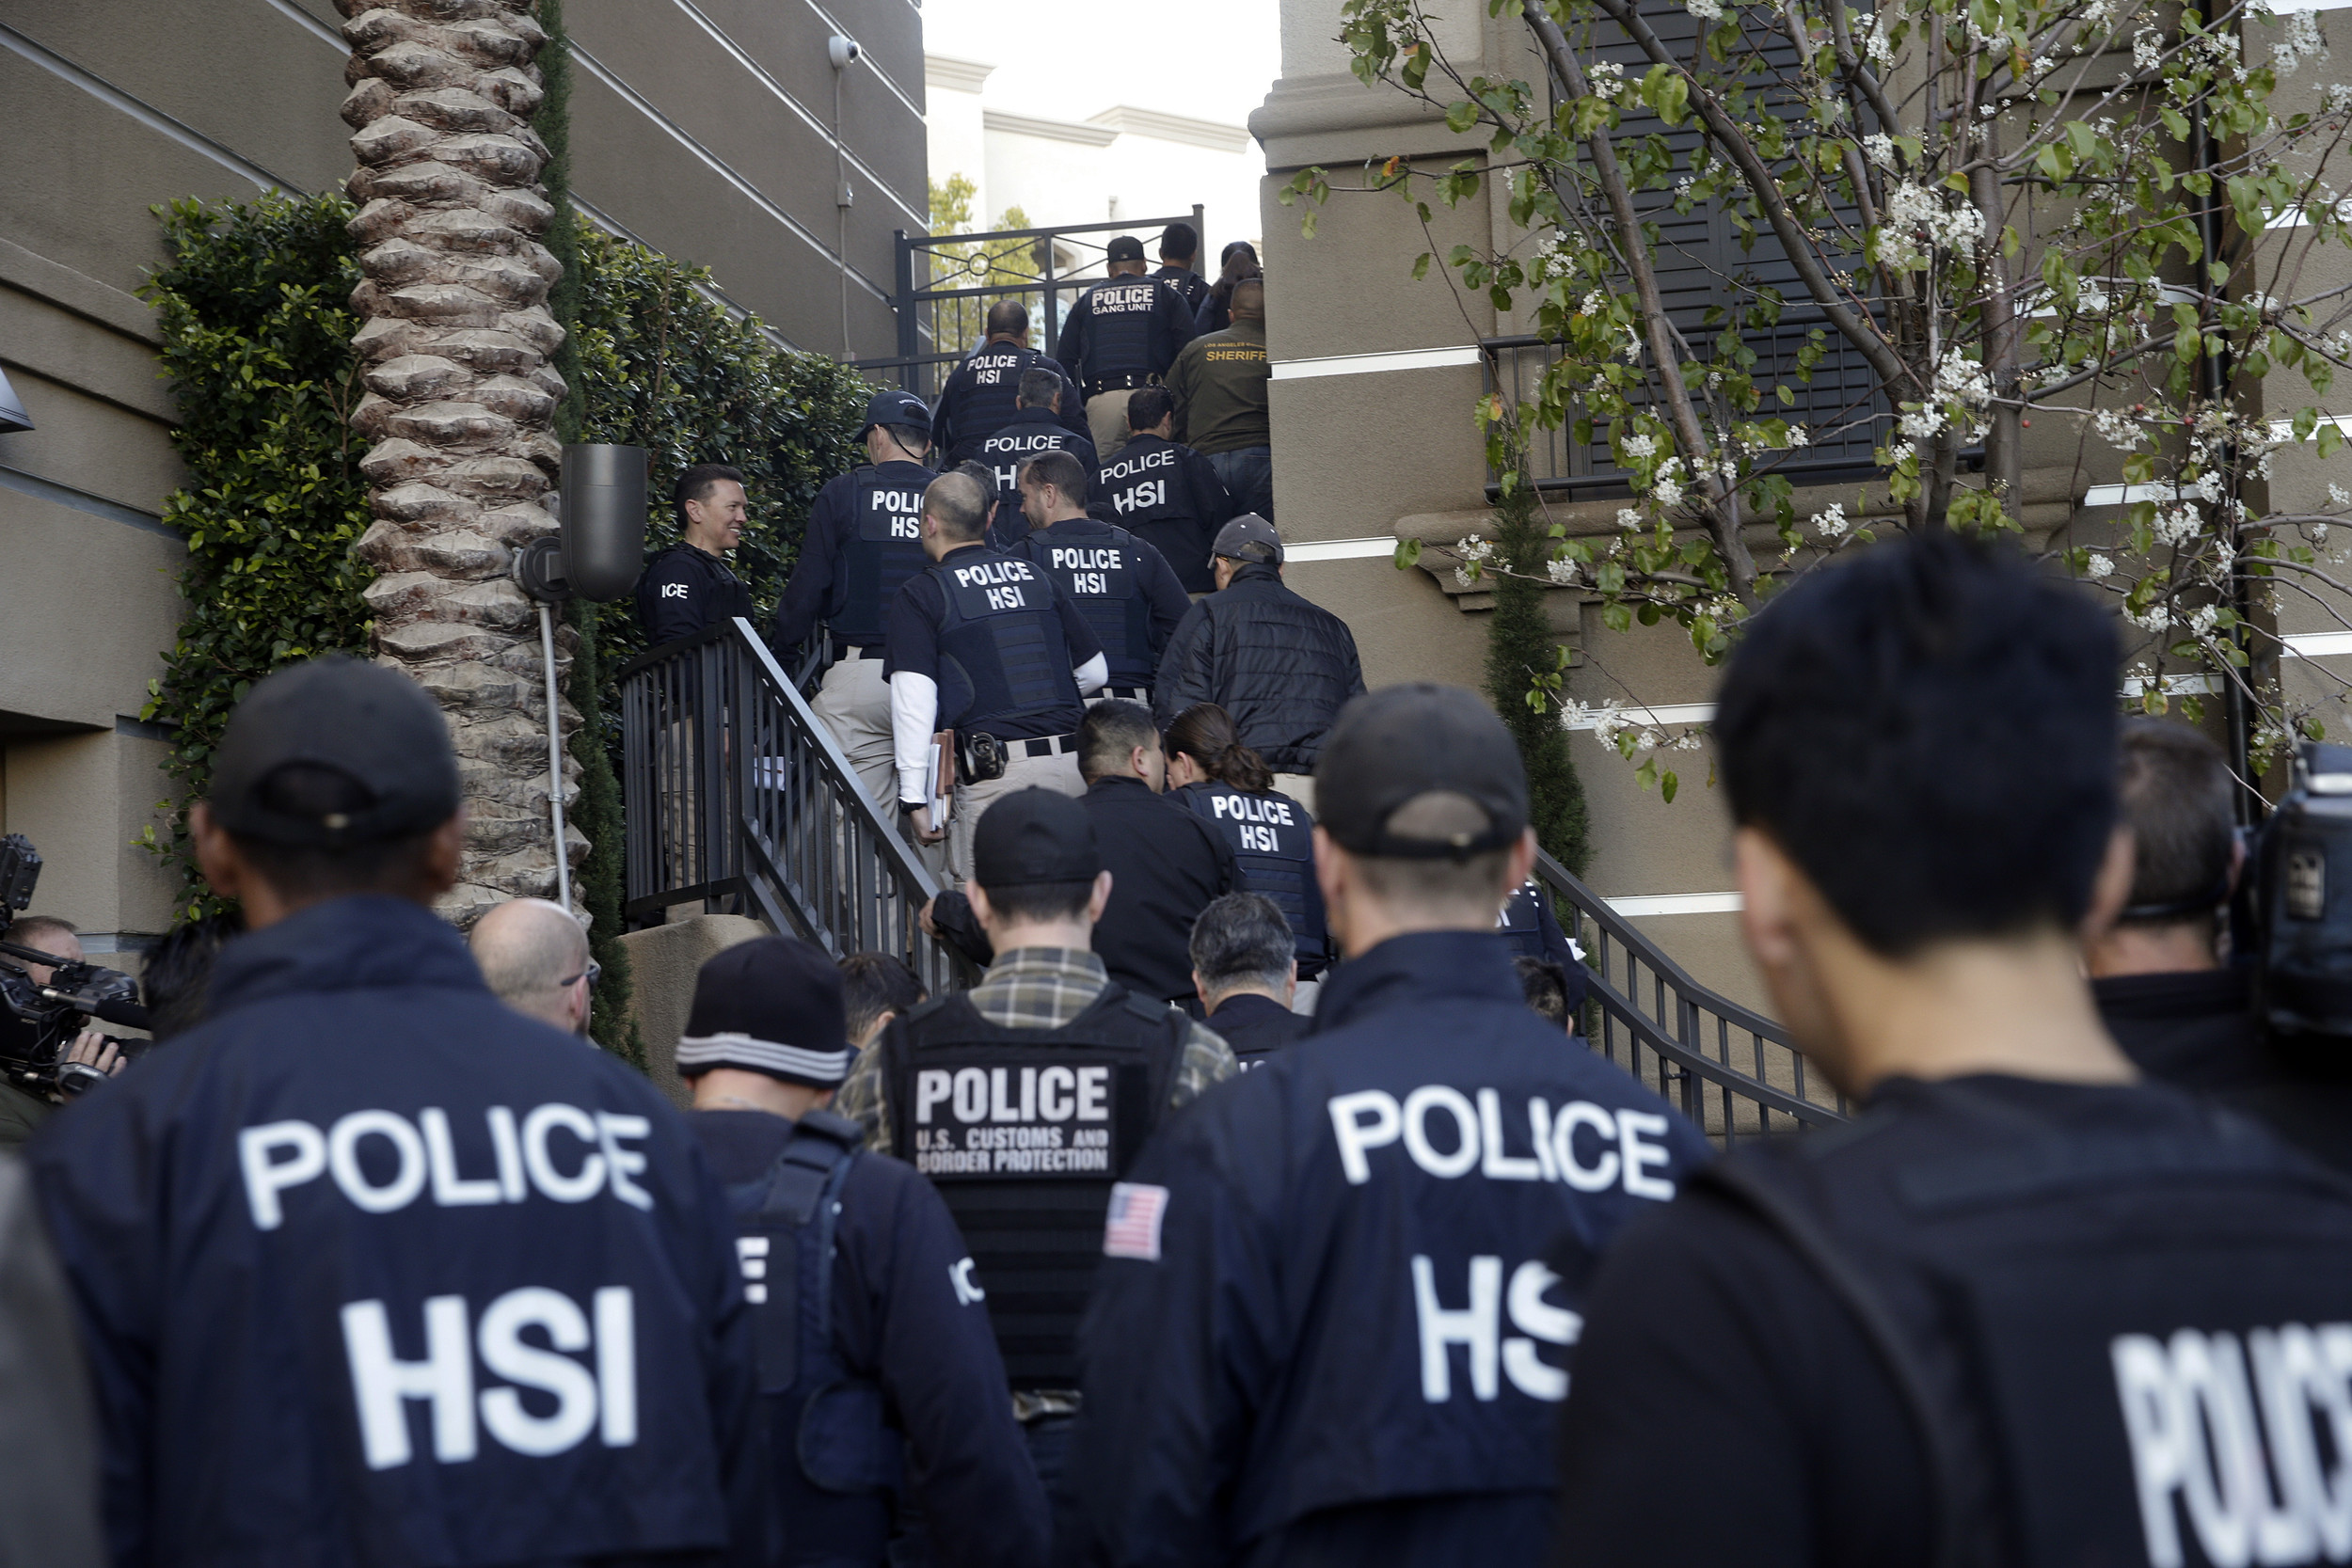 The raids are a response to the continued increase of Central American border crossings in recent months and are intended to combat the surge and to enforce immigration law, DHS Secretary Jeh Johnson explained in a press statement